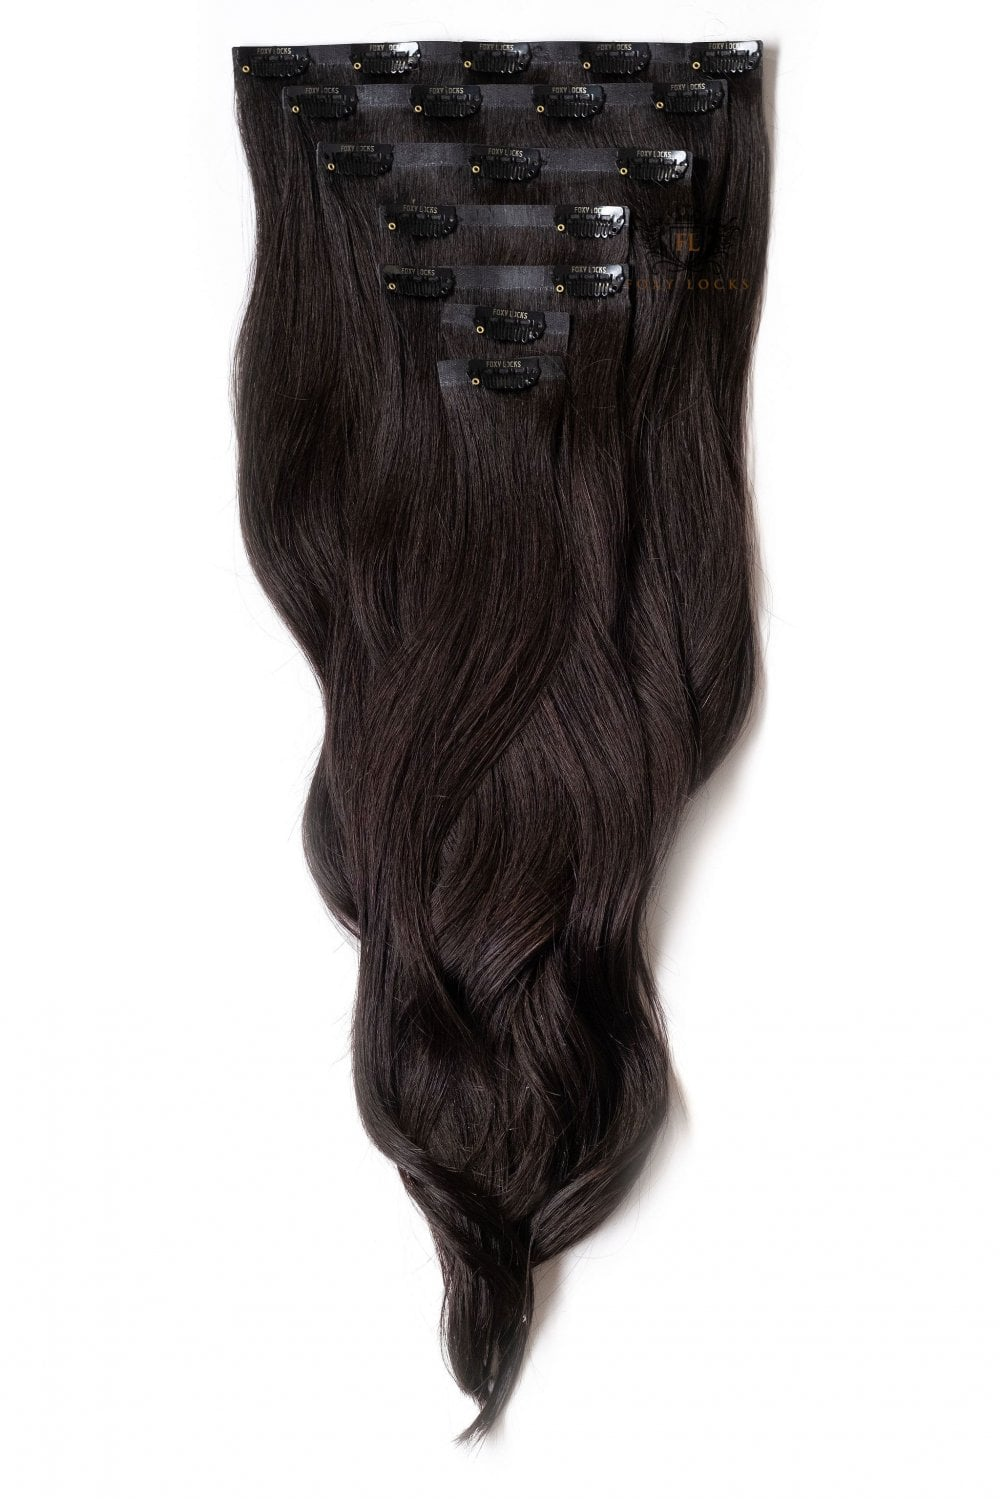 Brown black seamless deluxe 20 clip in human hair extensions 165g brown black deluxe 20 seamless clip in human hair extensions pmusecretfo Choice Image